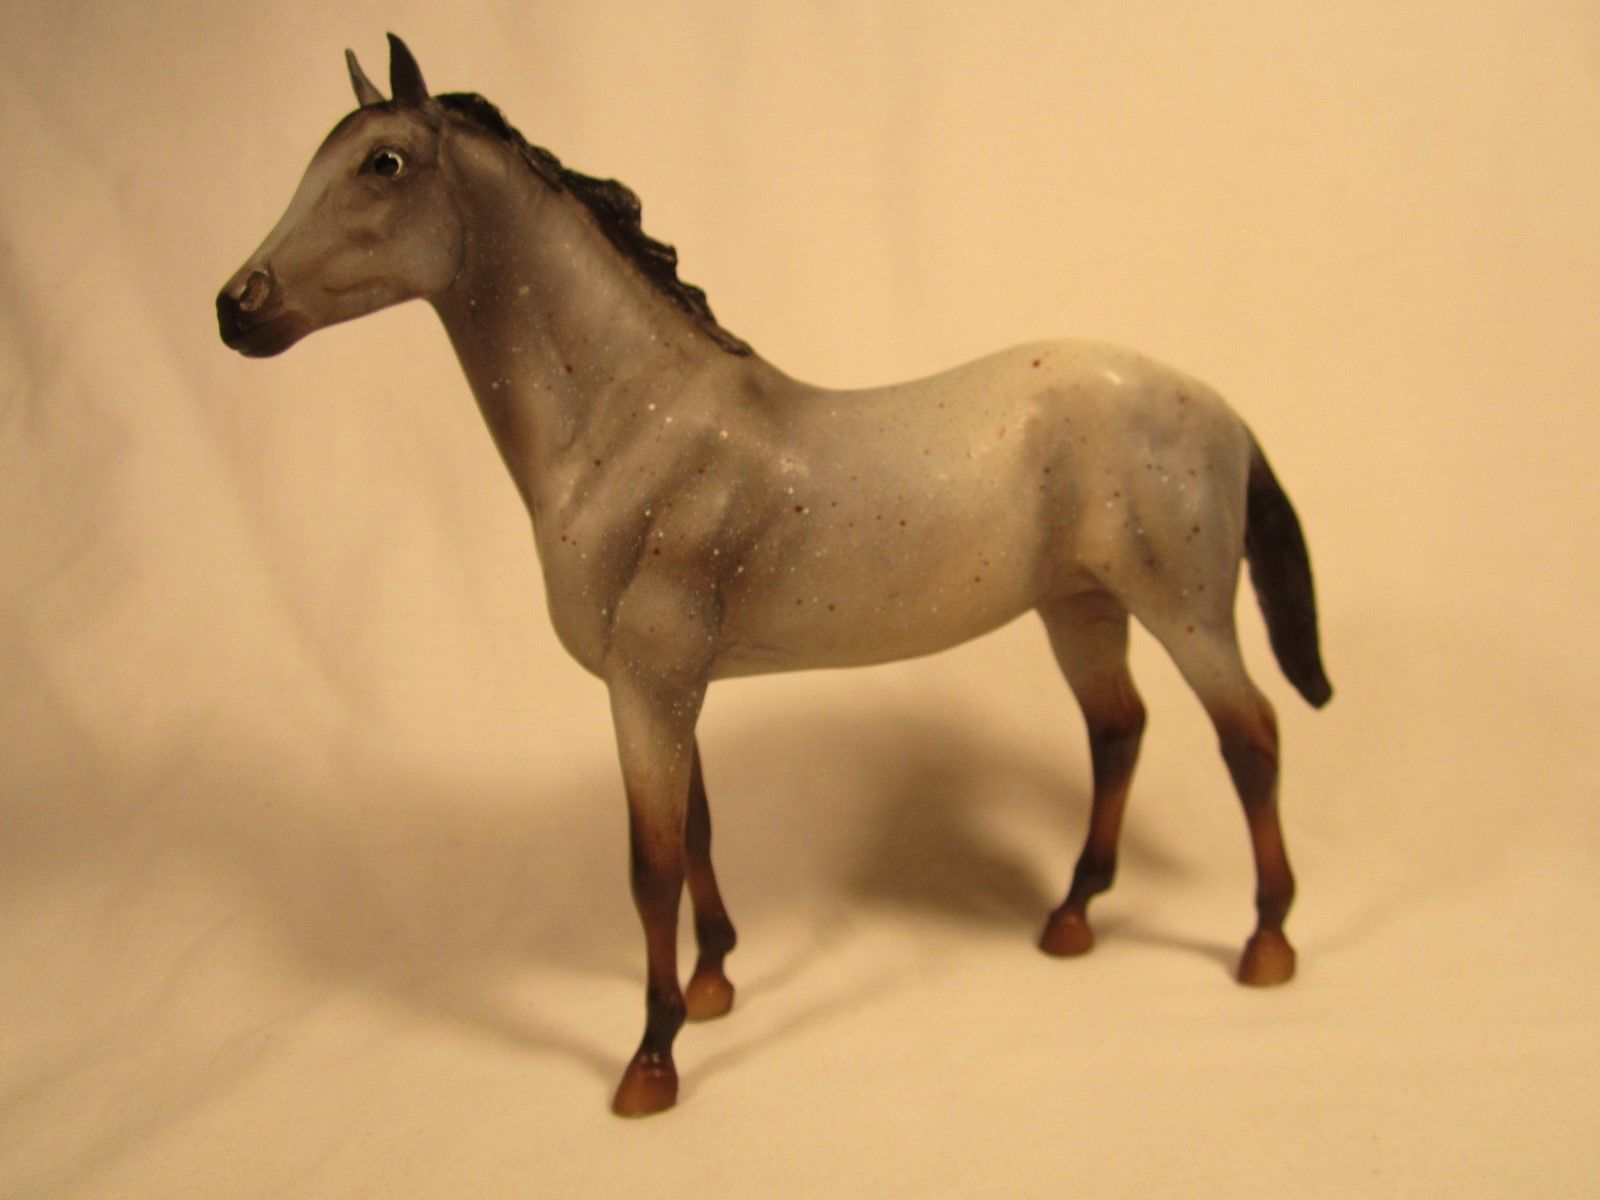 Primary image for BREYER MOLDING Horse Classic Mold #3040DU DUCHESS Model 6136 WILD BLUE [Z212o]